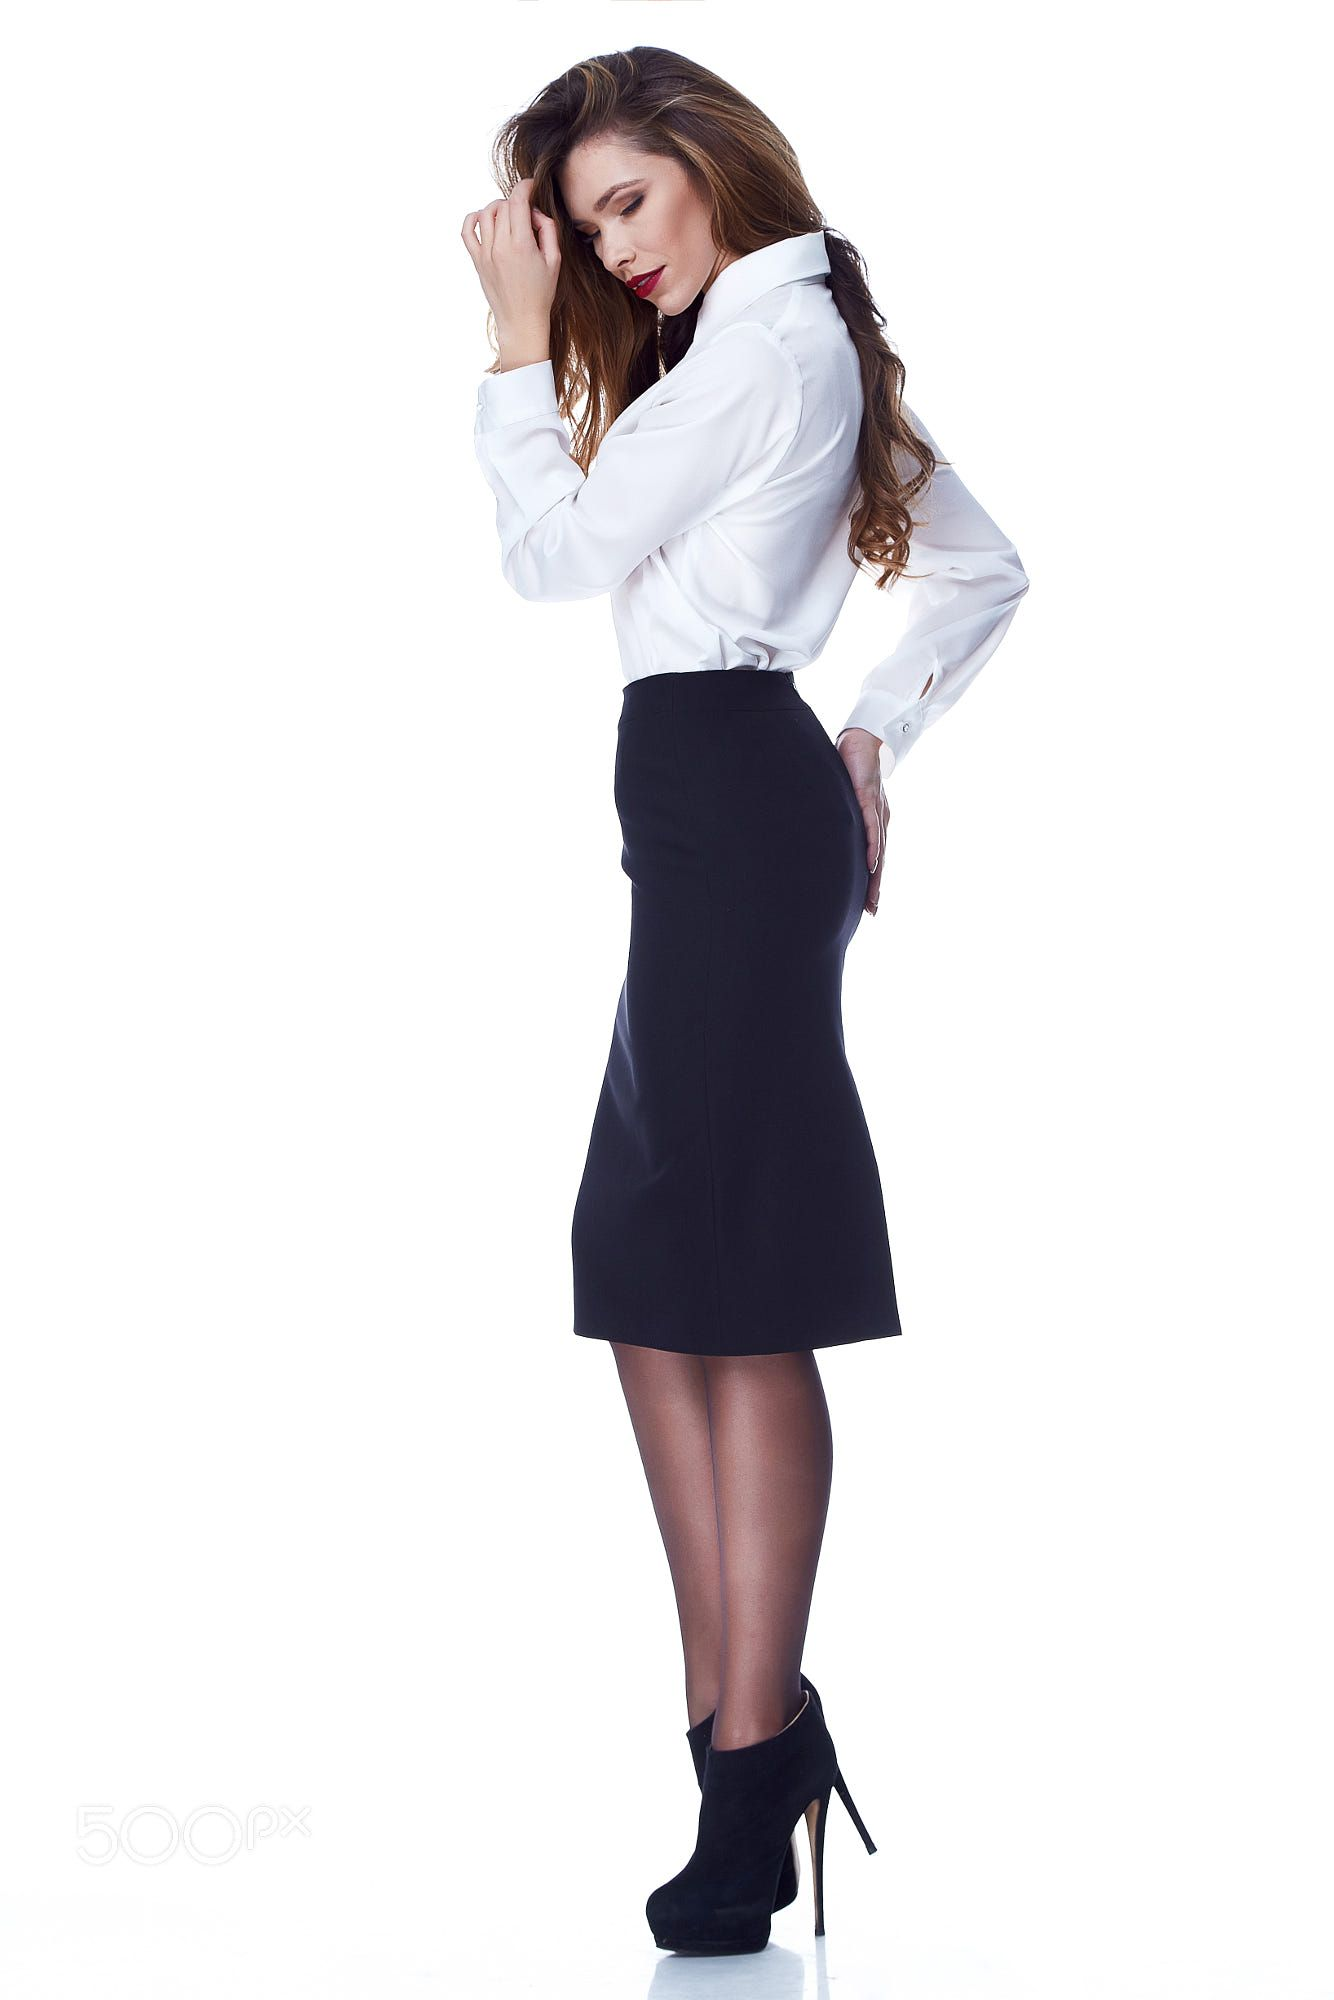 c2b47dfb2d Sexy brunette woman skinny business style dress skirt blouse perfect body  shape diet busy glamour lady casual style secretary diplomatic protocol  office ...